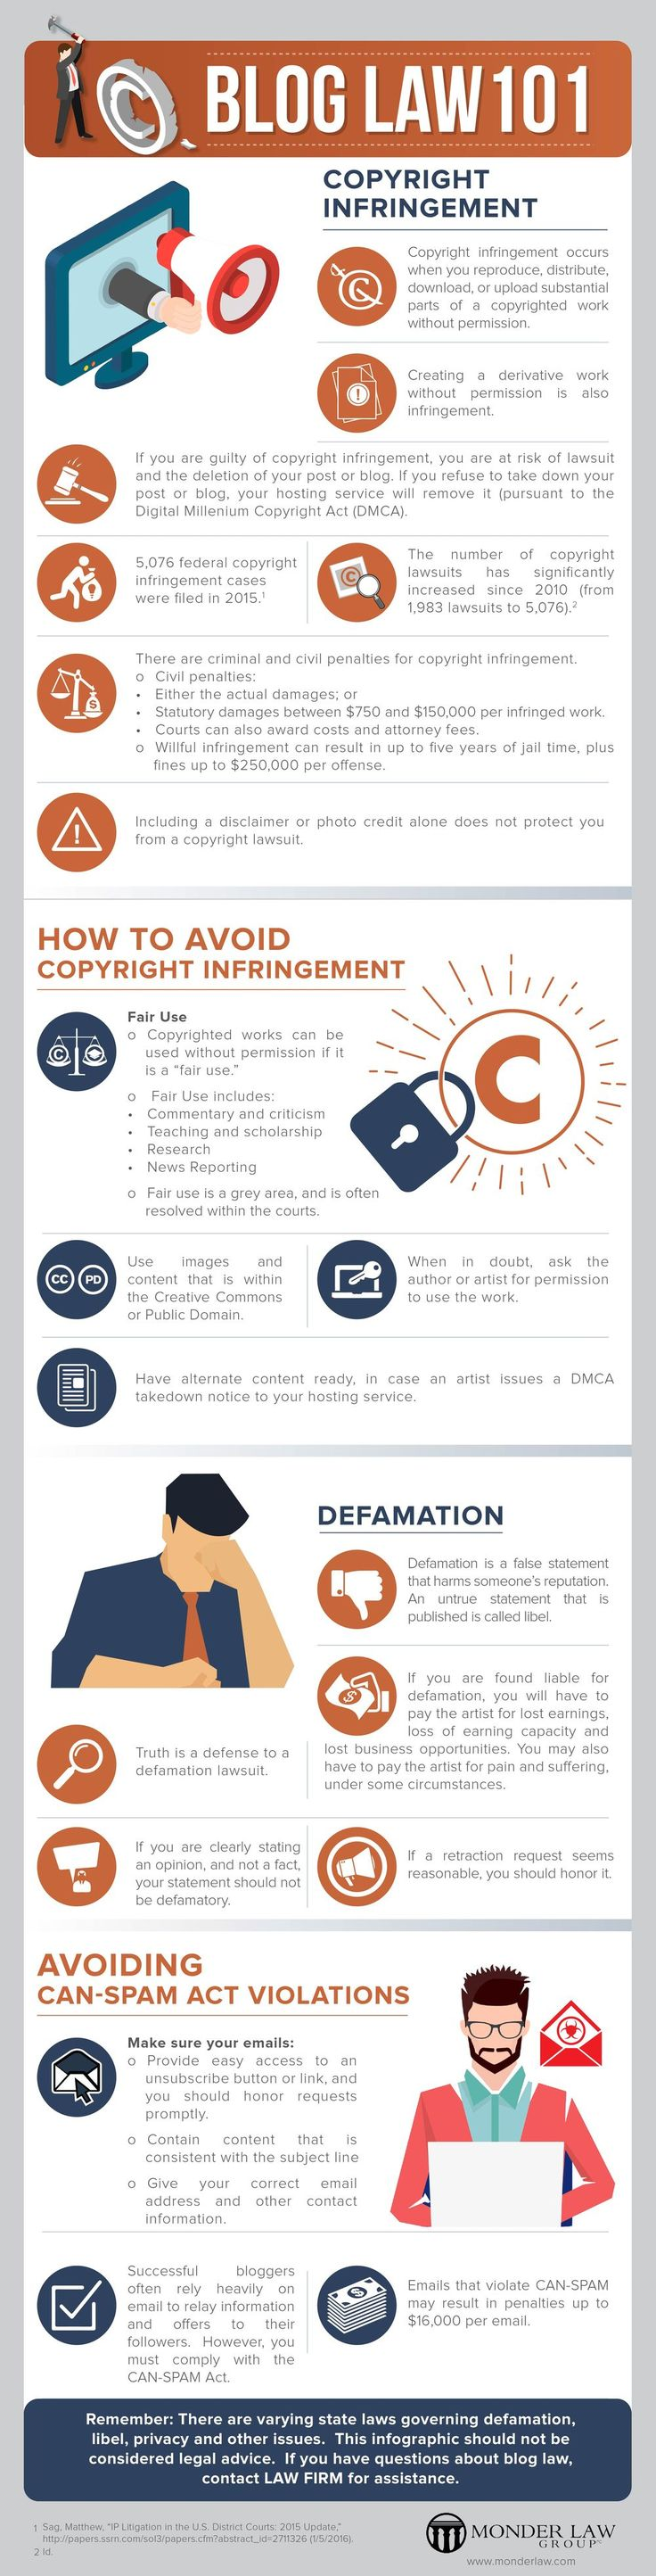 How often have we come across content that has been copied? Well, more often than not we have seen it frequently occurring in the blogging world. Here is a infographic by Monder Law for both beginner and advanced bloggers detailing the law of blogging.